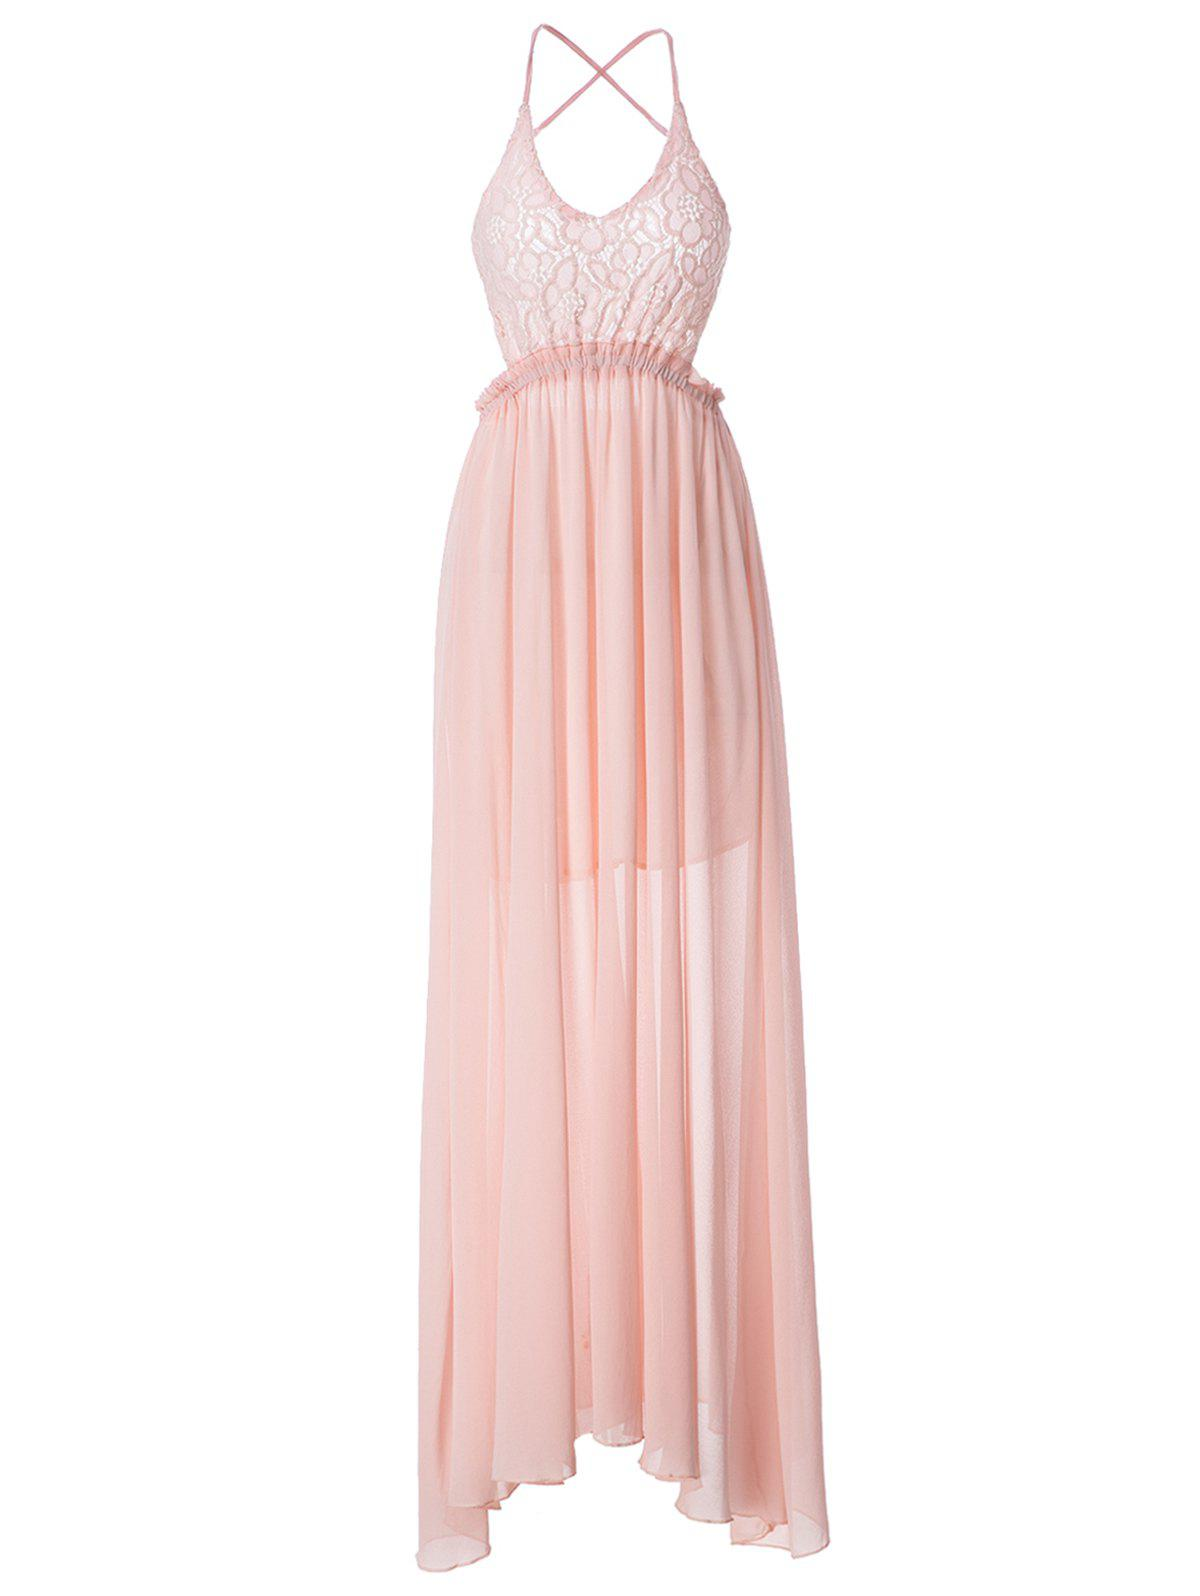 Solid Color Backless Sleeveless V-Neck Lace Splcing Wide Hem Alluring Dress - PINK L